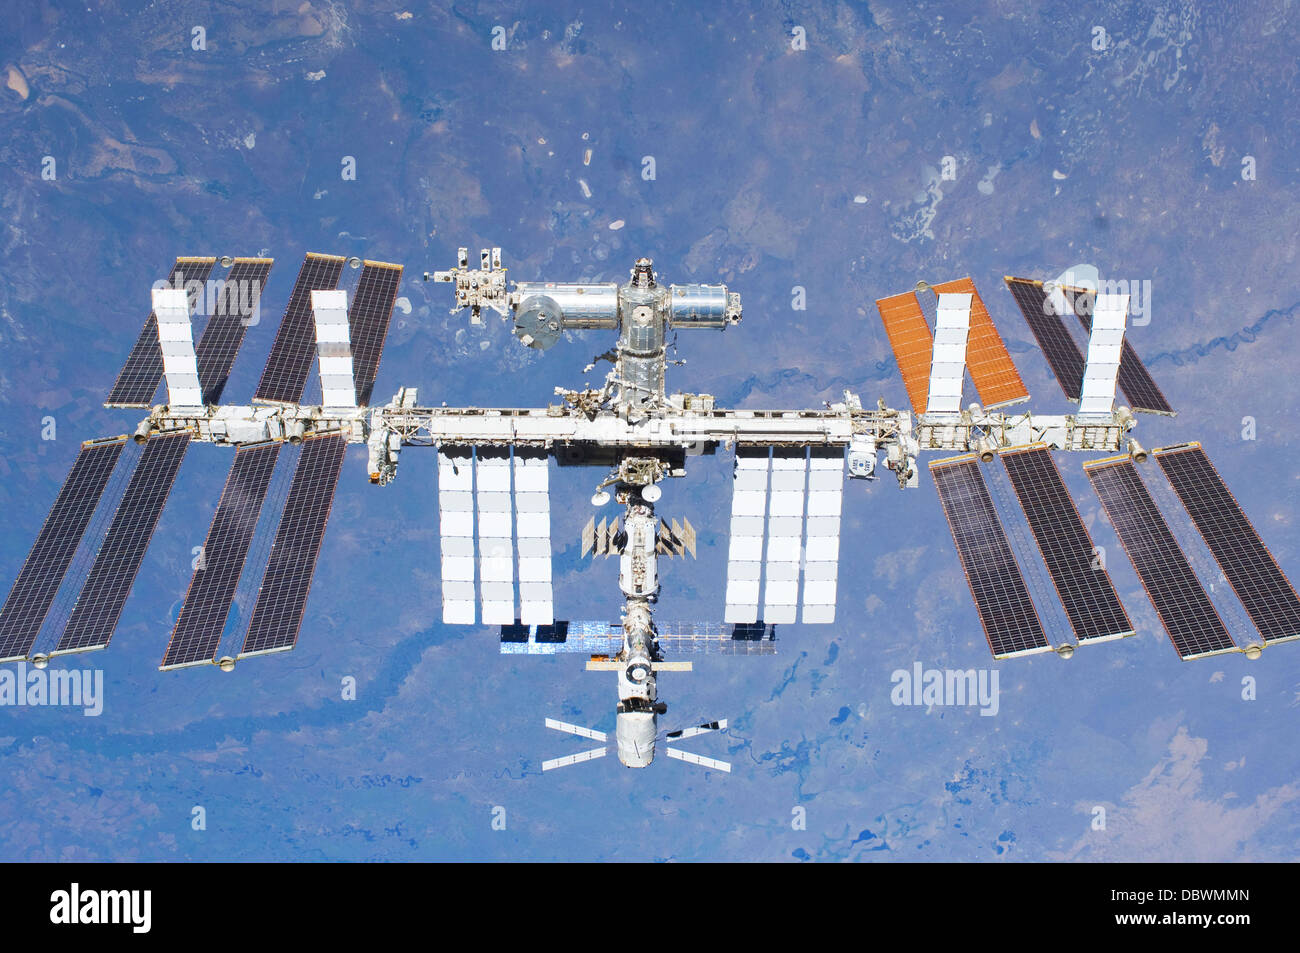 NASA image of International Space Station (ISS) flying above earth - Stock Image